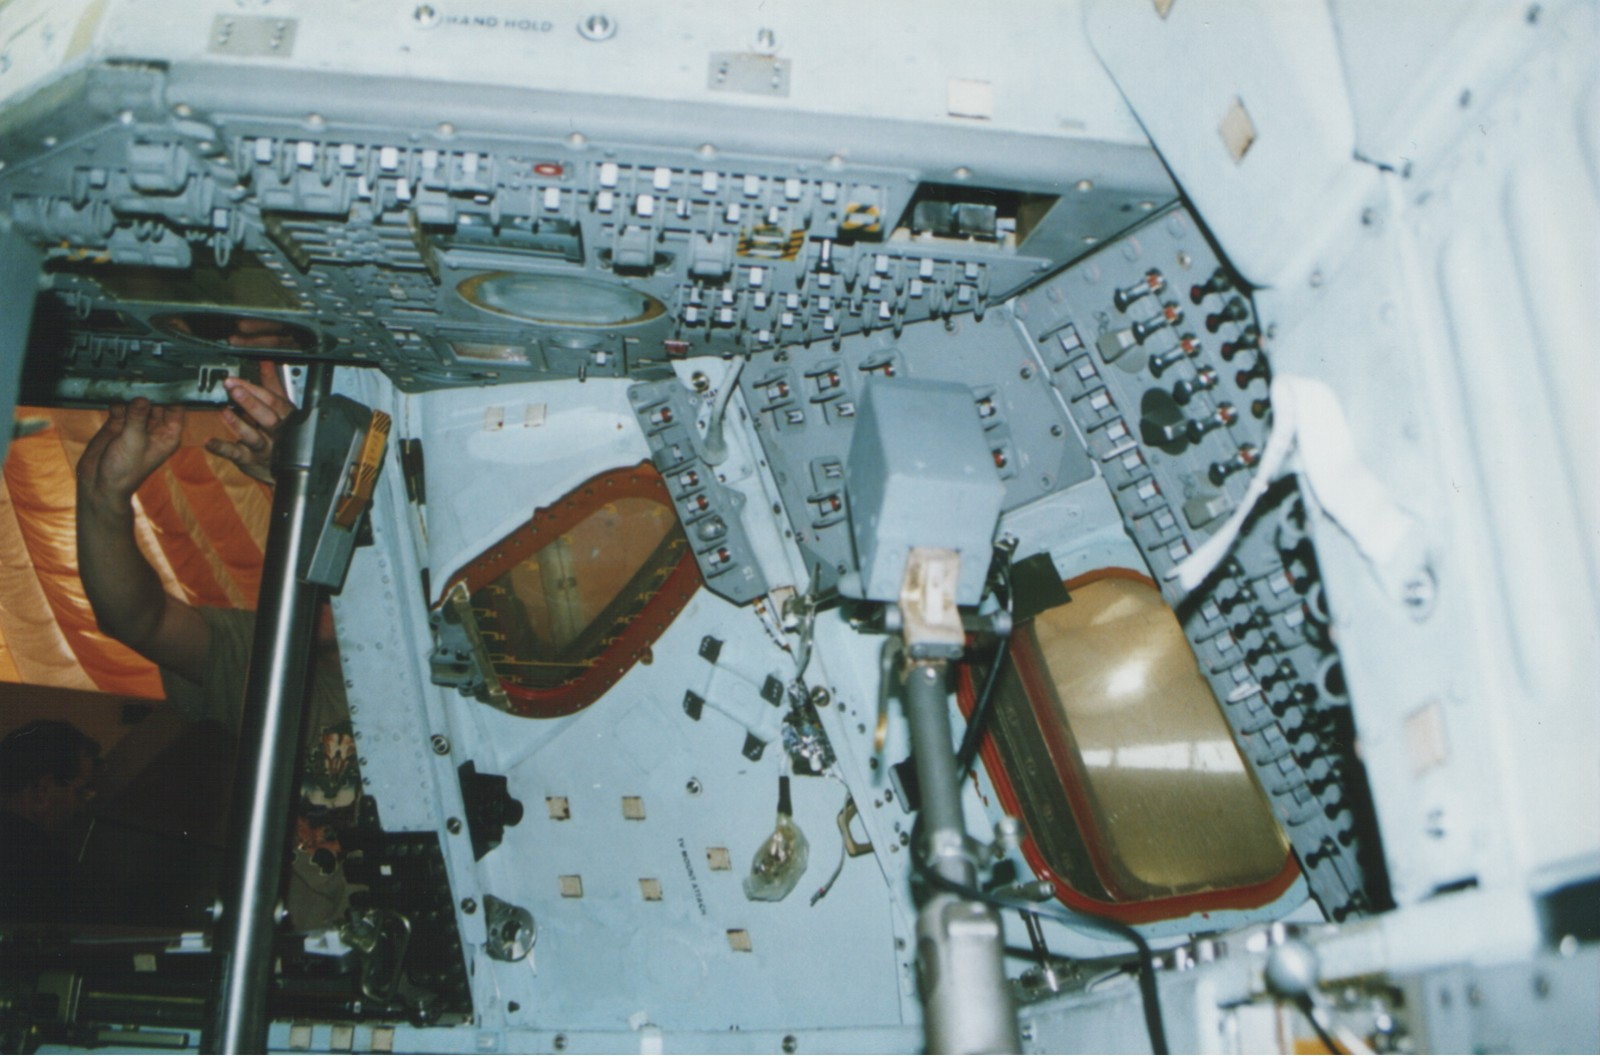 apollo capsule control panel - photo #31